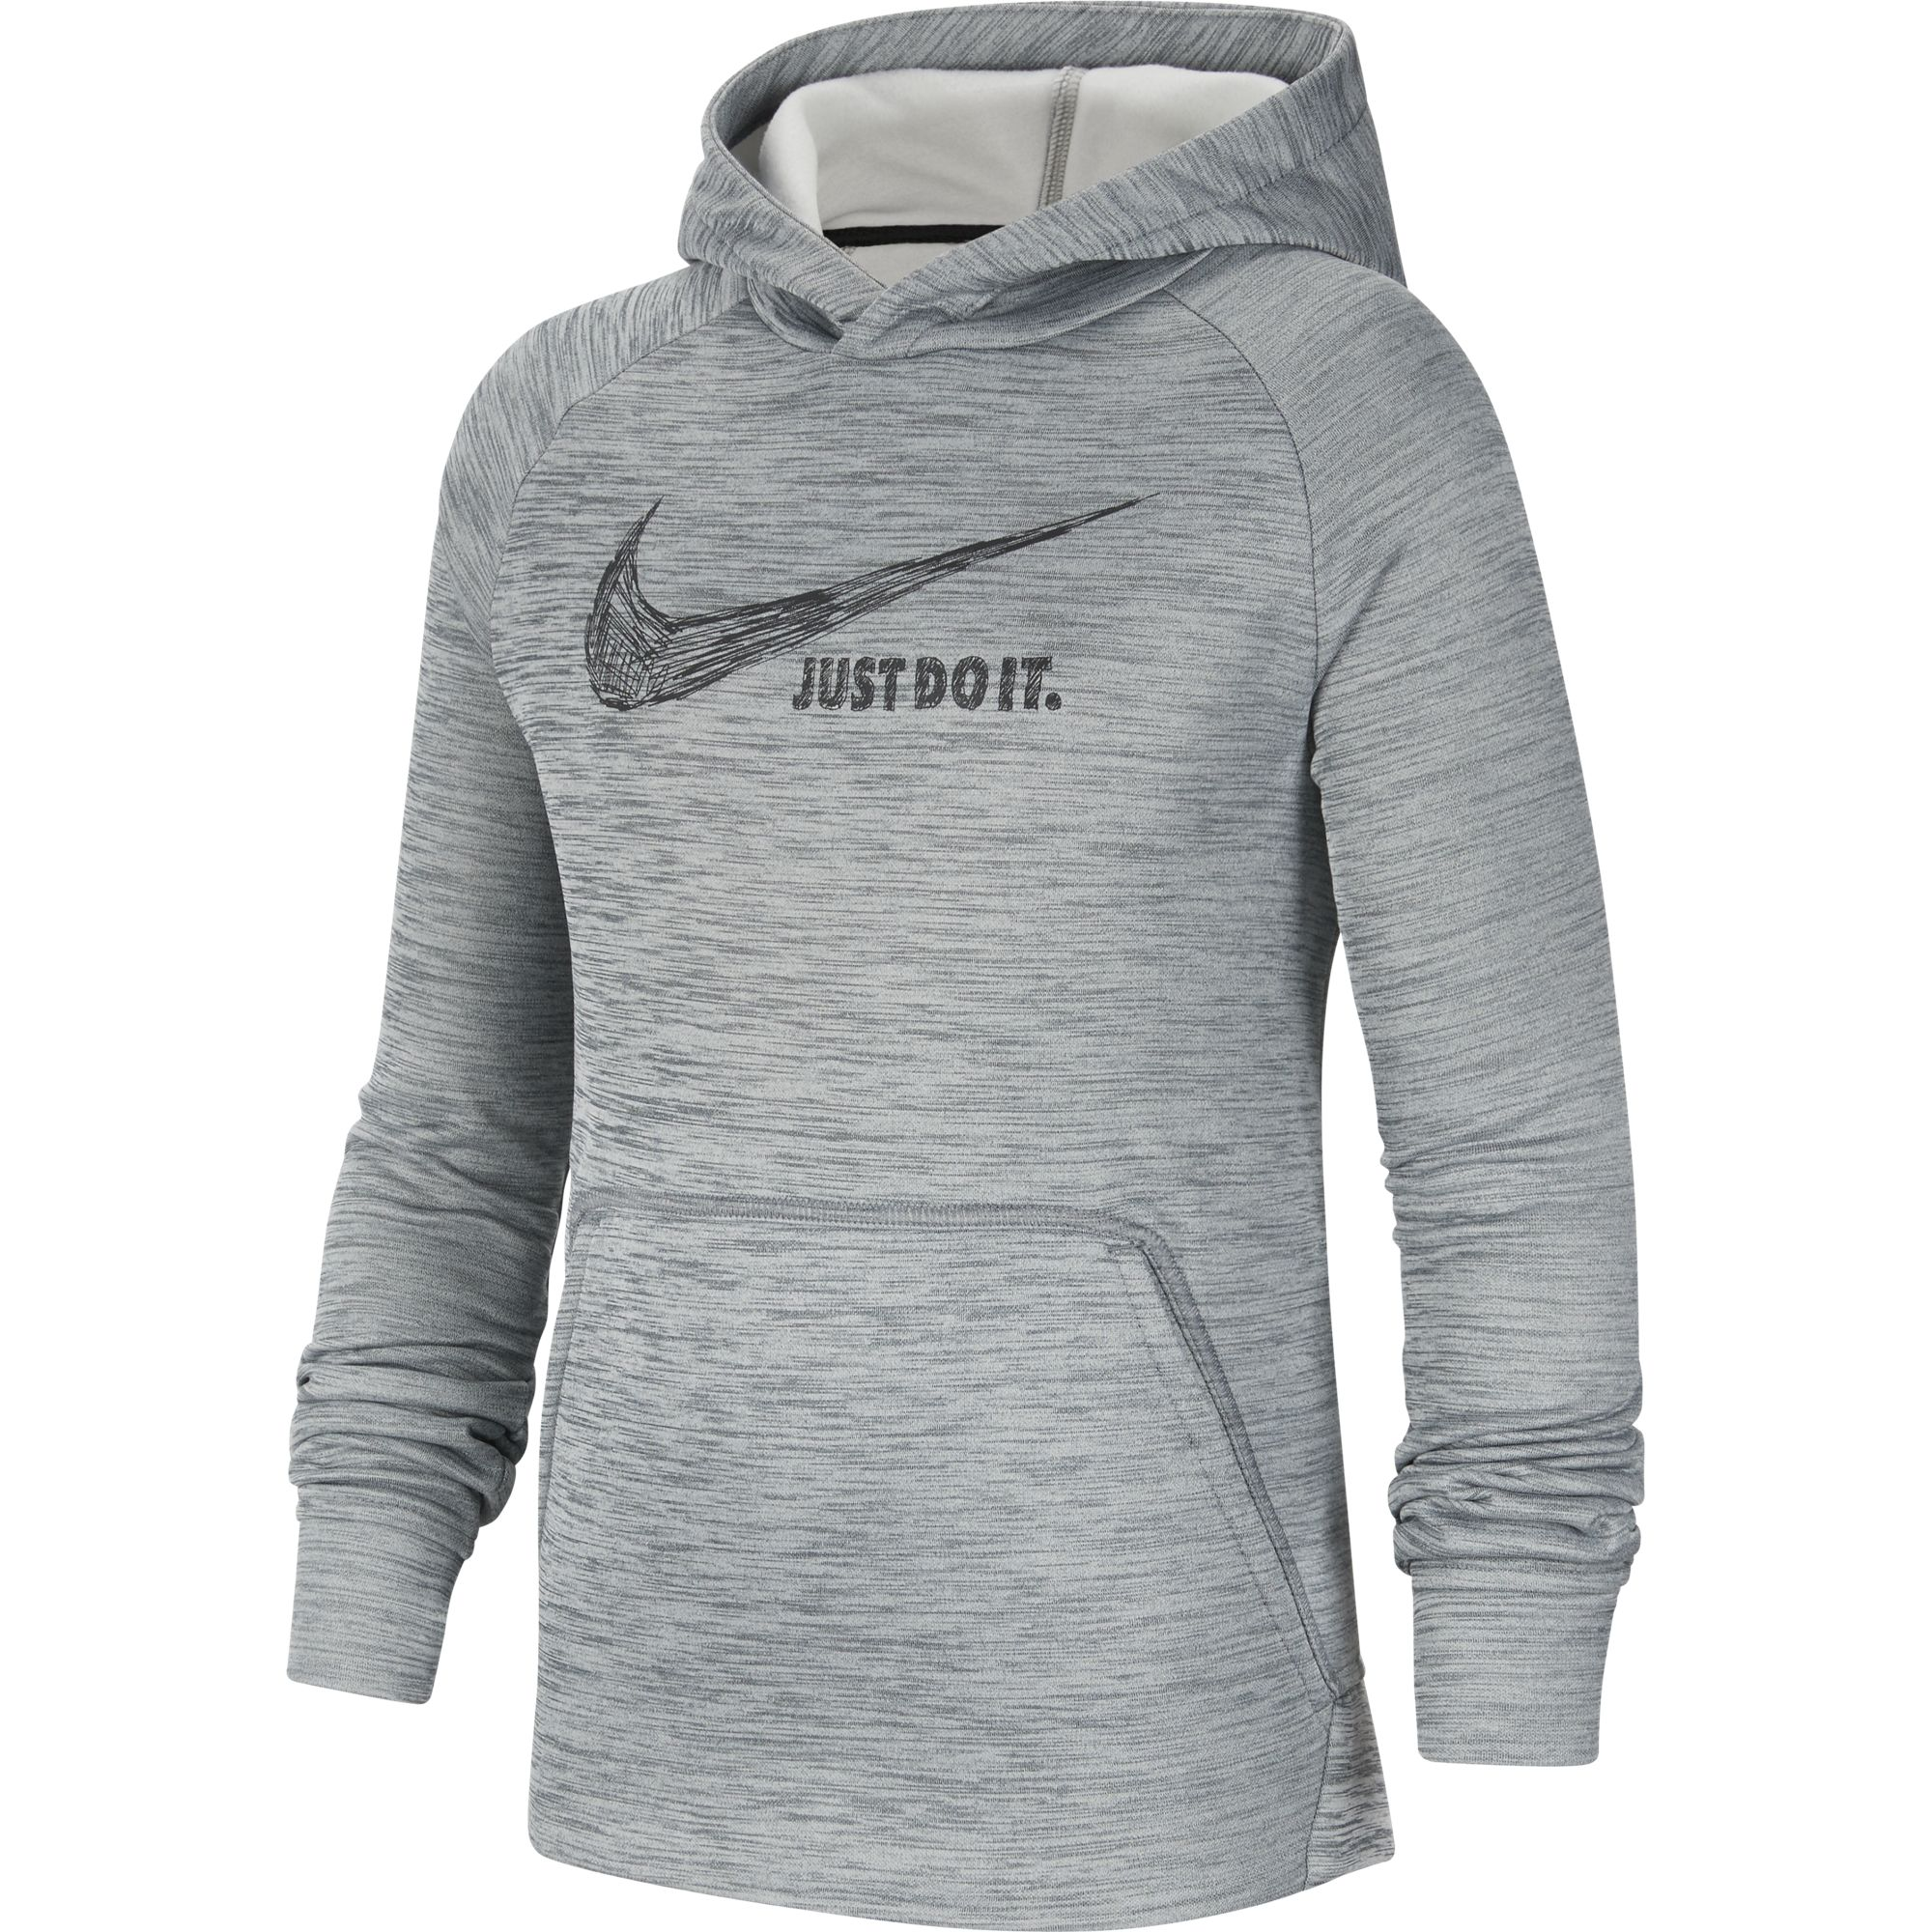 Boys' Graphic Pullover Hoodie, Heather Gray, swatch